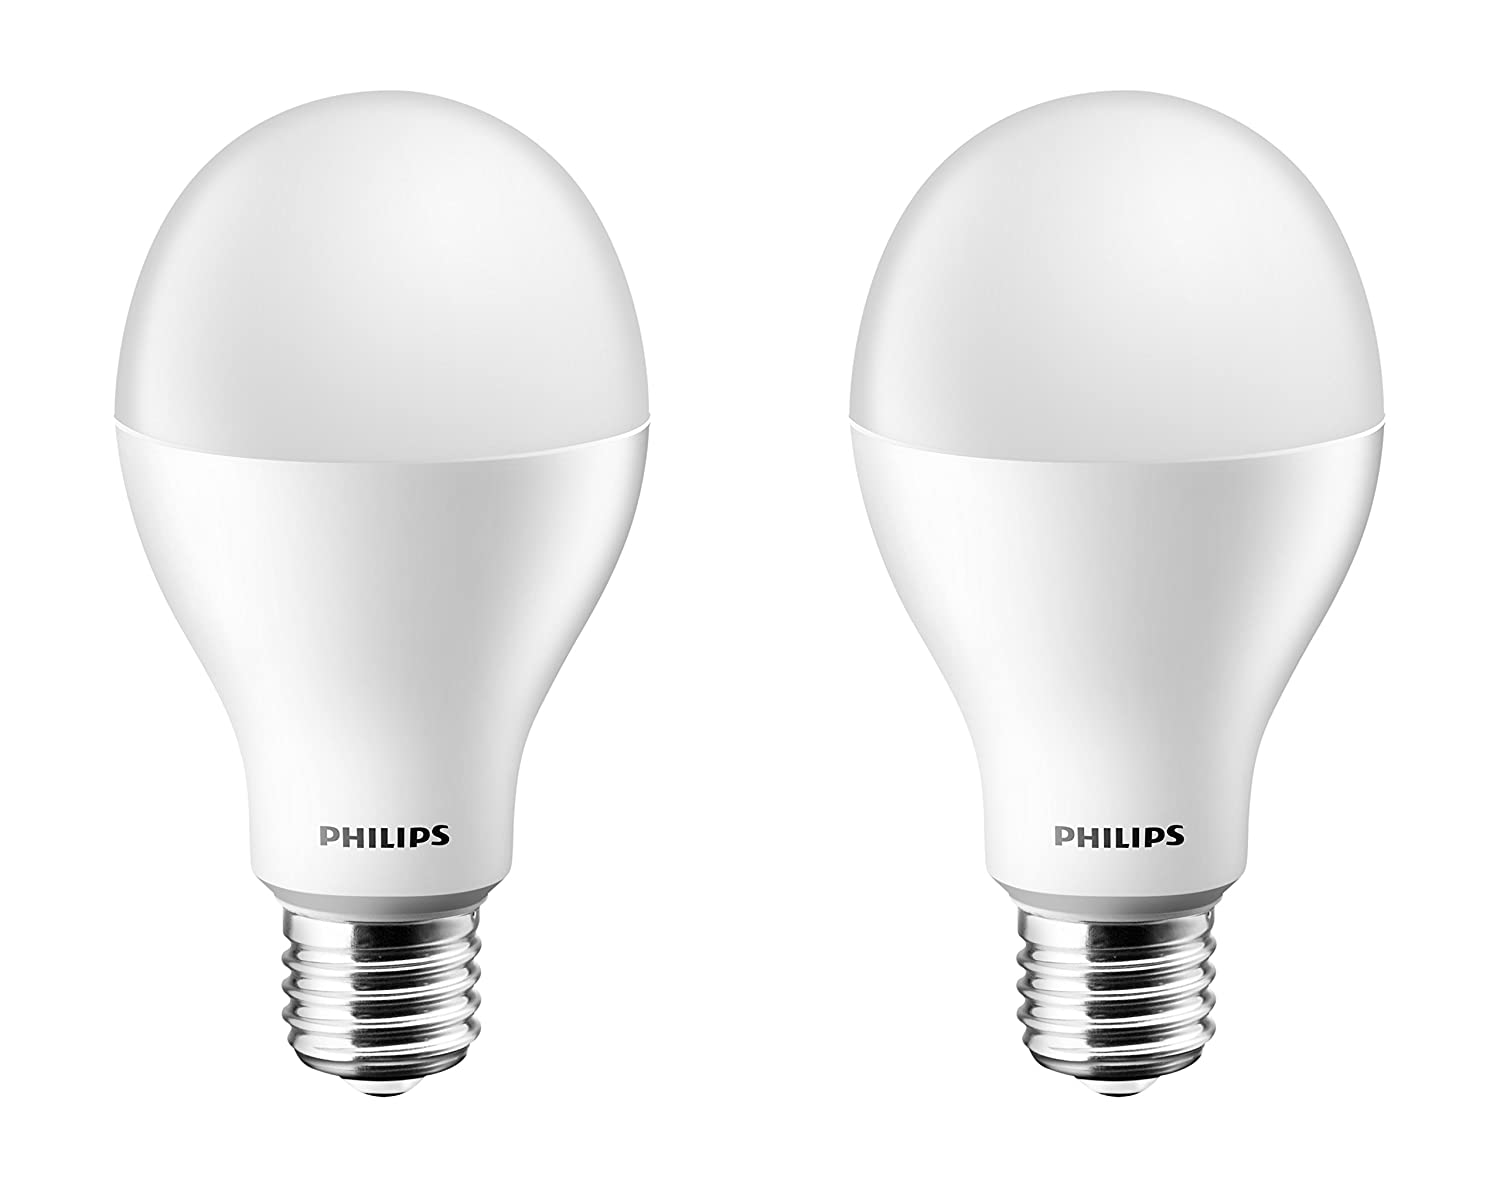 Buy philips e27 17 watt led bulb cool day light pack of 2 buy philips e27 17 watt led bulb cool day light pack of 2 online at low prices in india amazon parisarafo Gallery